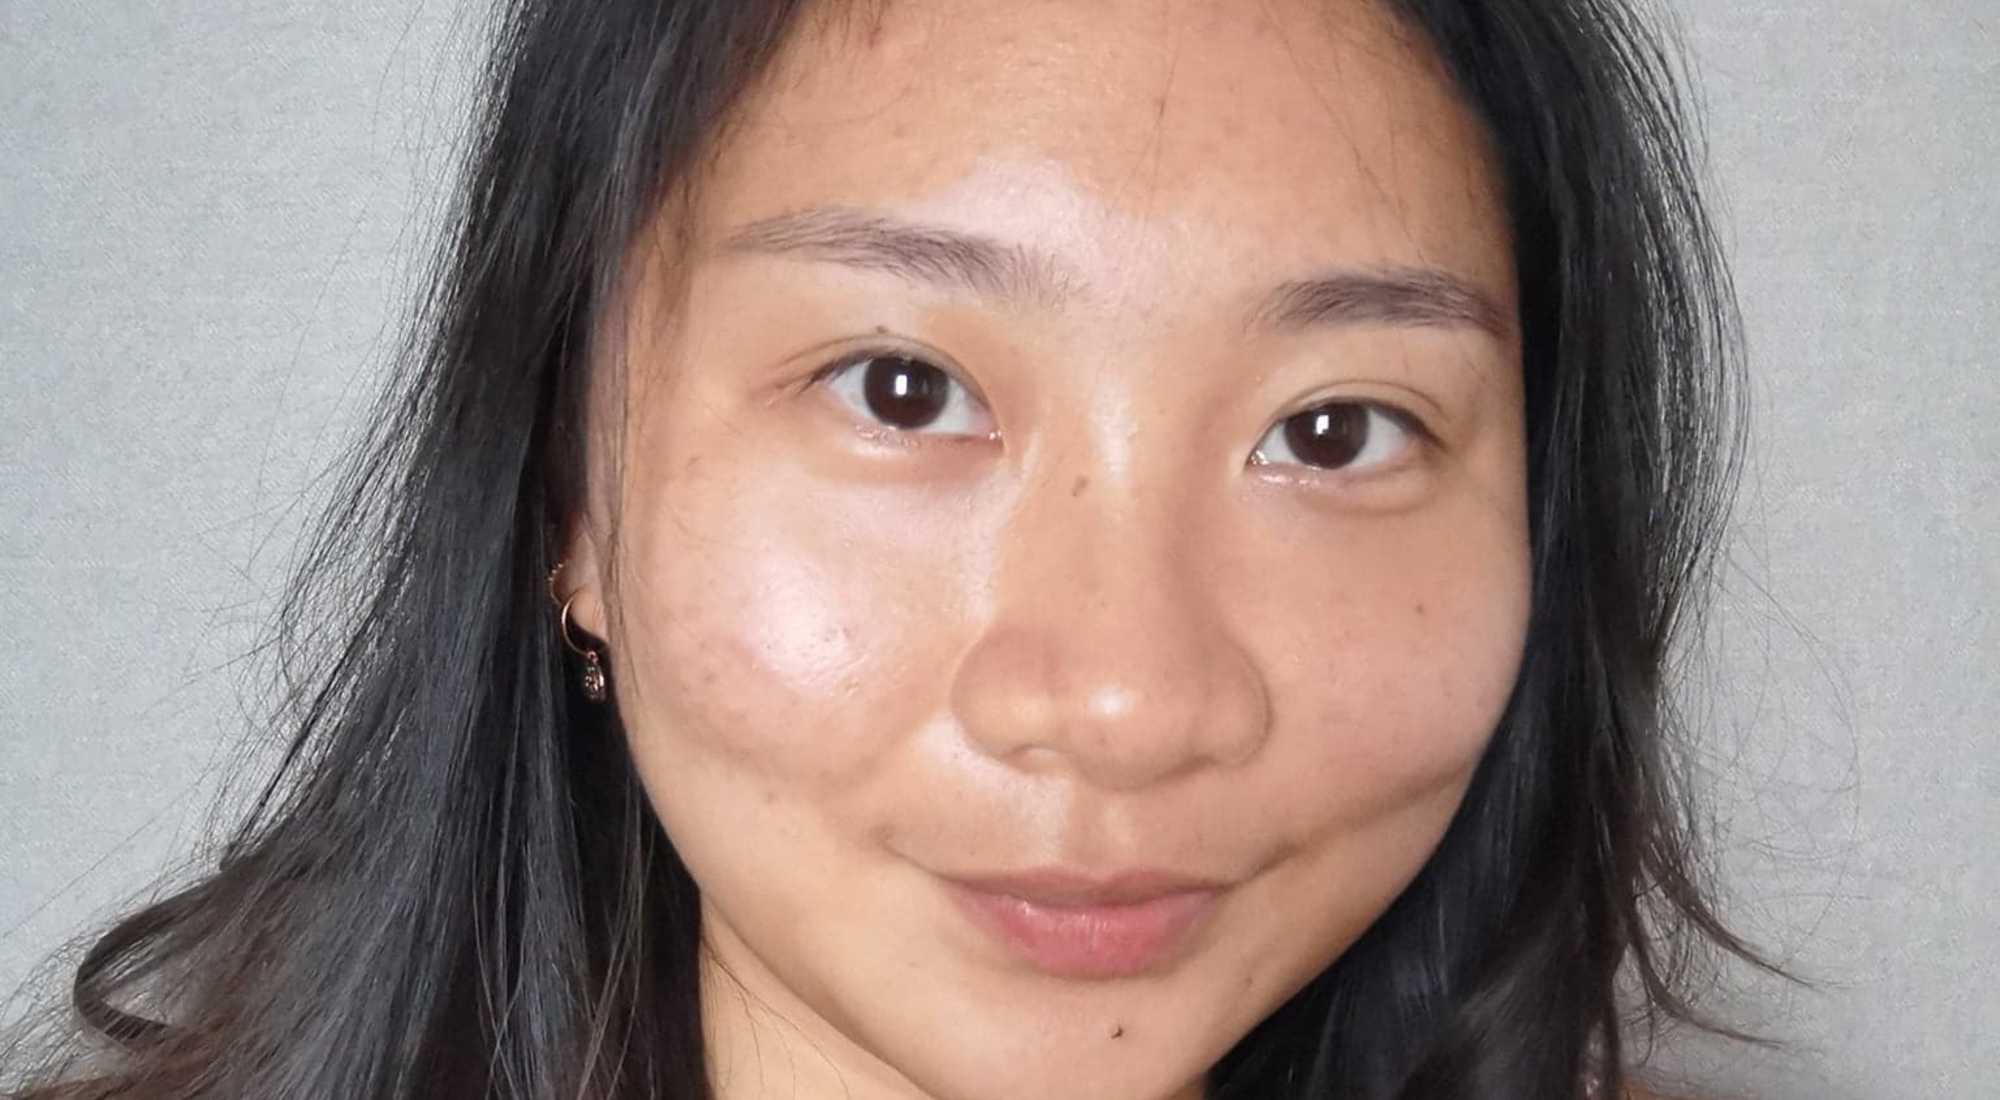 Improvement After 2 Sessions of Acne Facial Treatment at Apple Queen Beauty